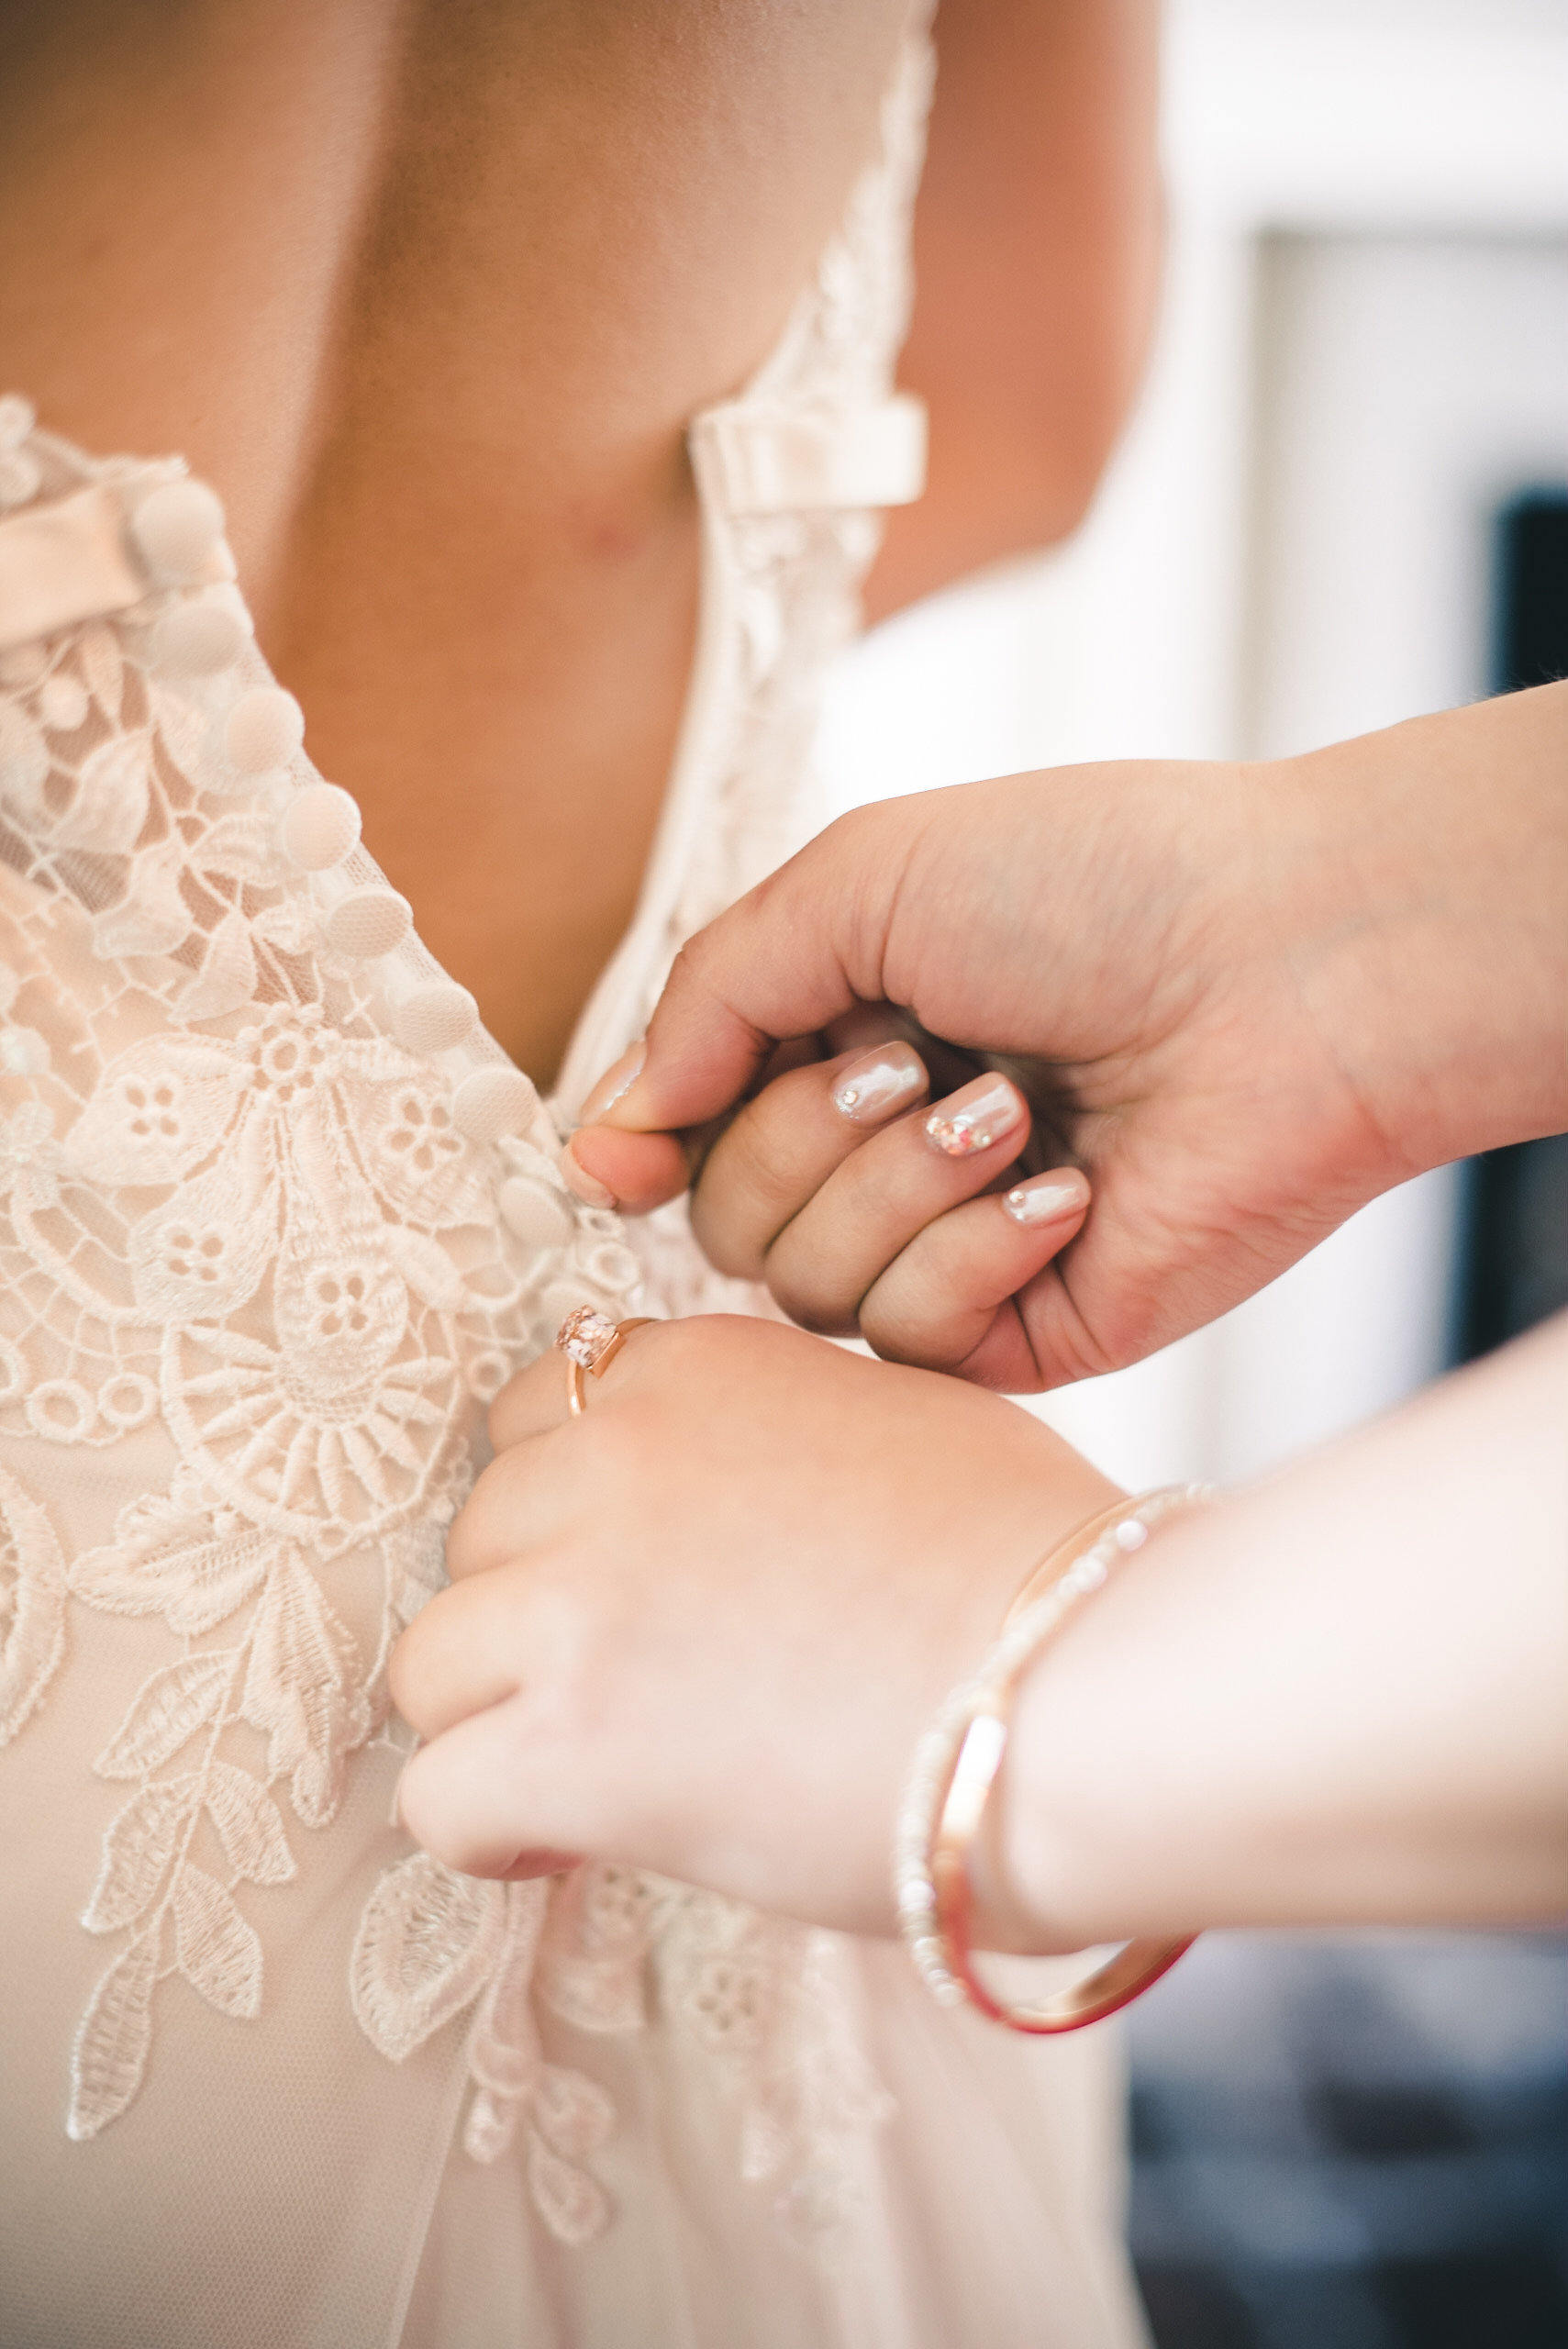 Buttoning up bridal dress